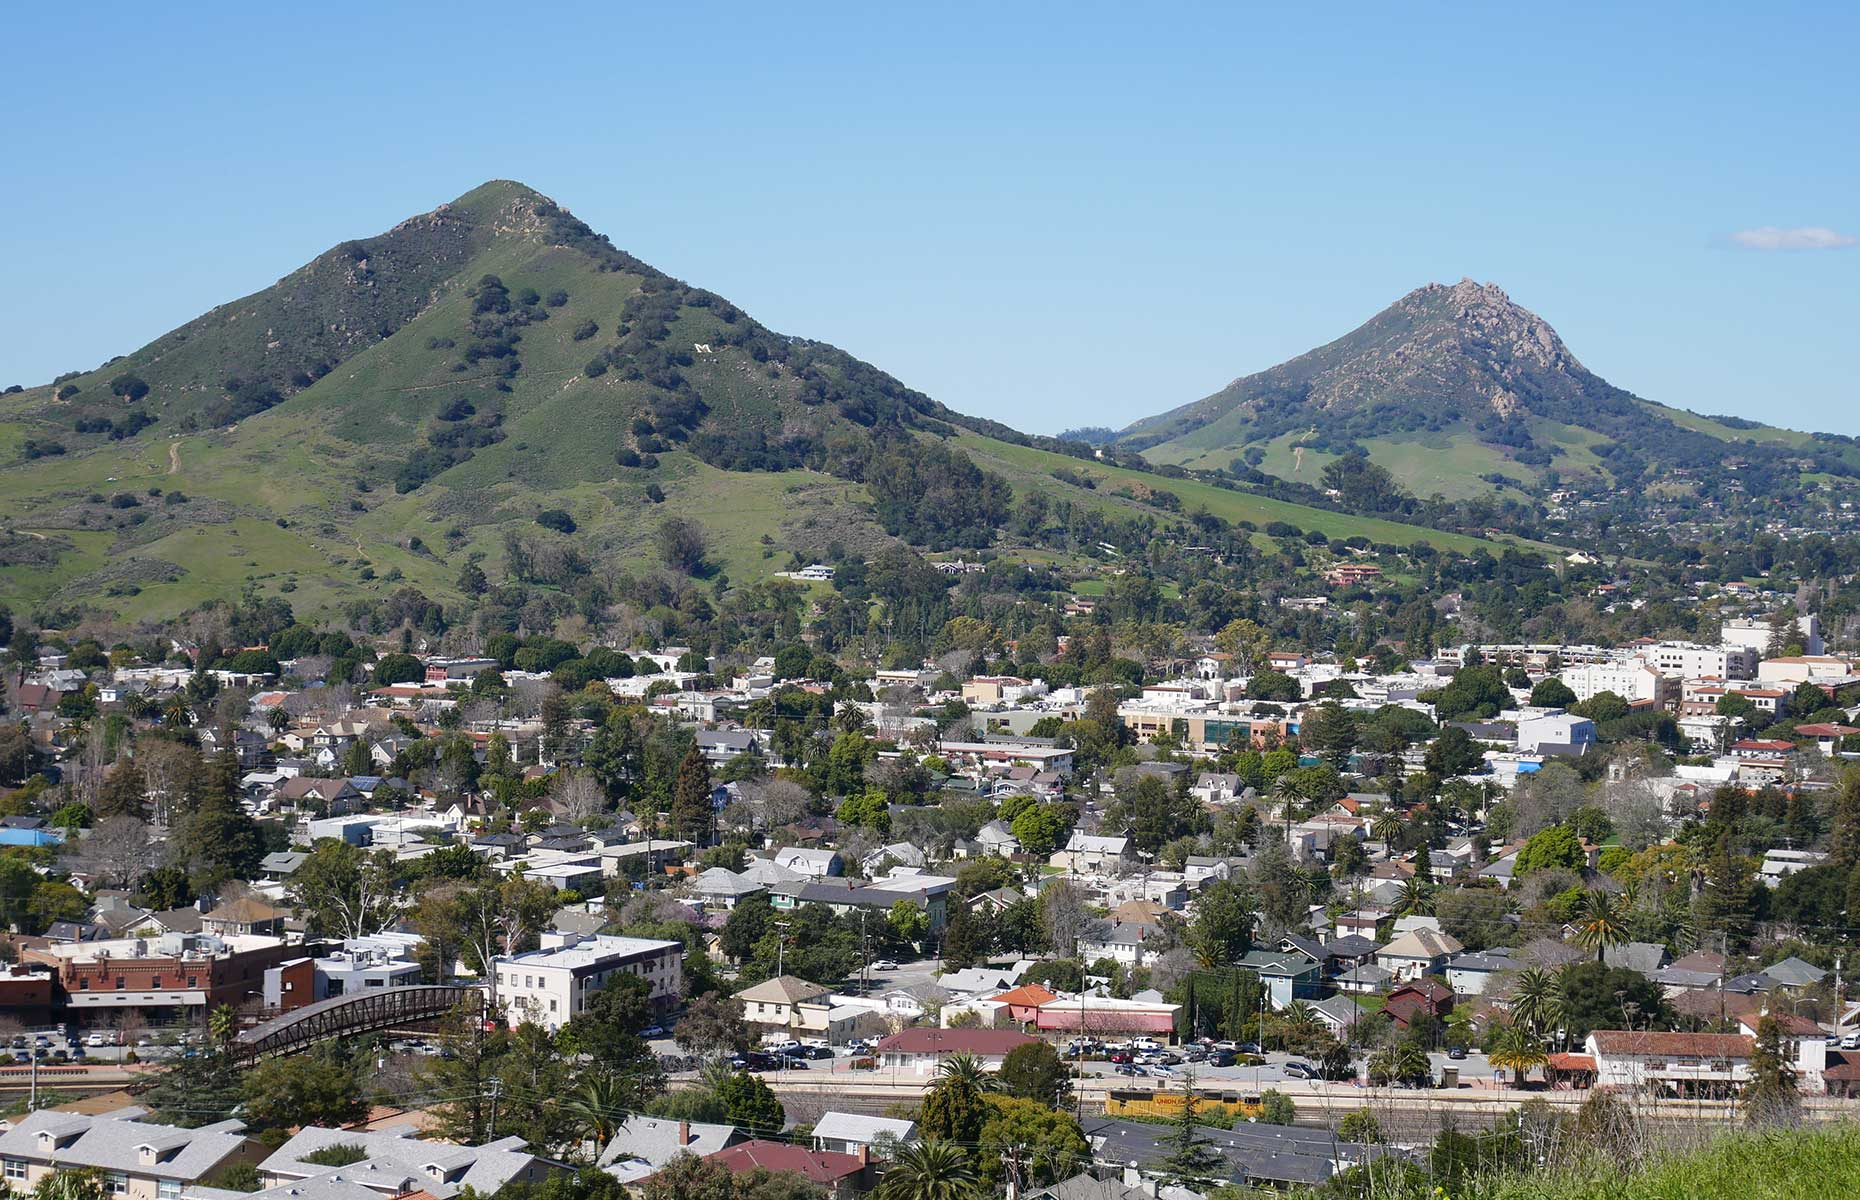 A view of Bishop Peak and Madonna Mountain from Terrace Hill, near San Luis Obispo, California